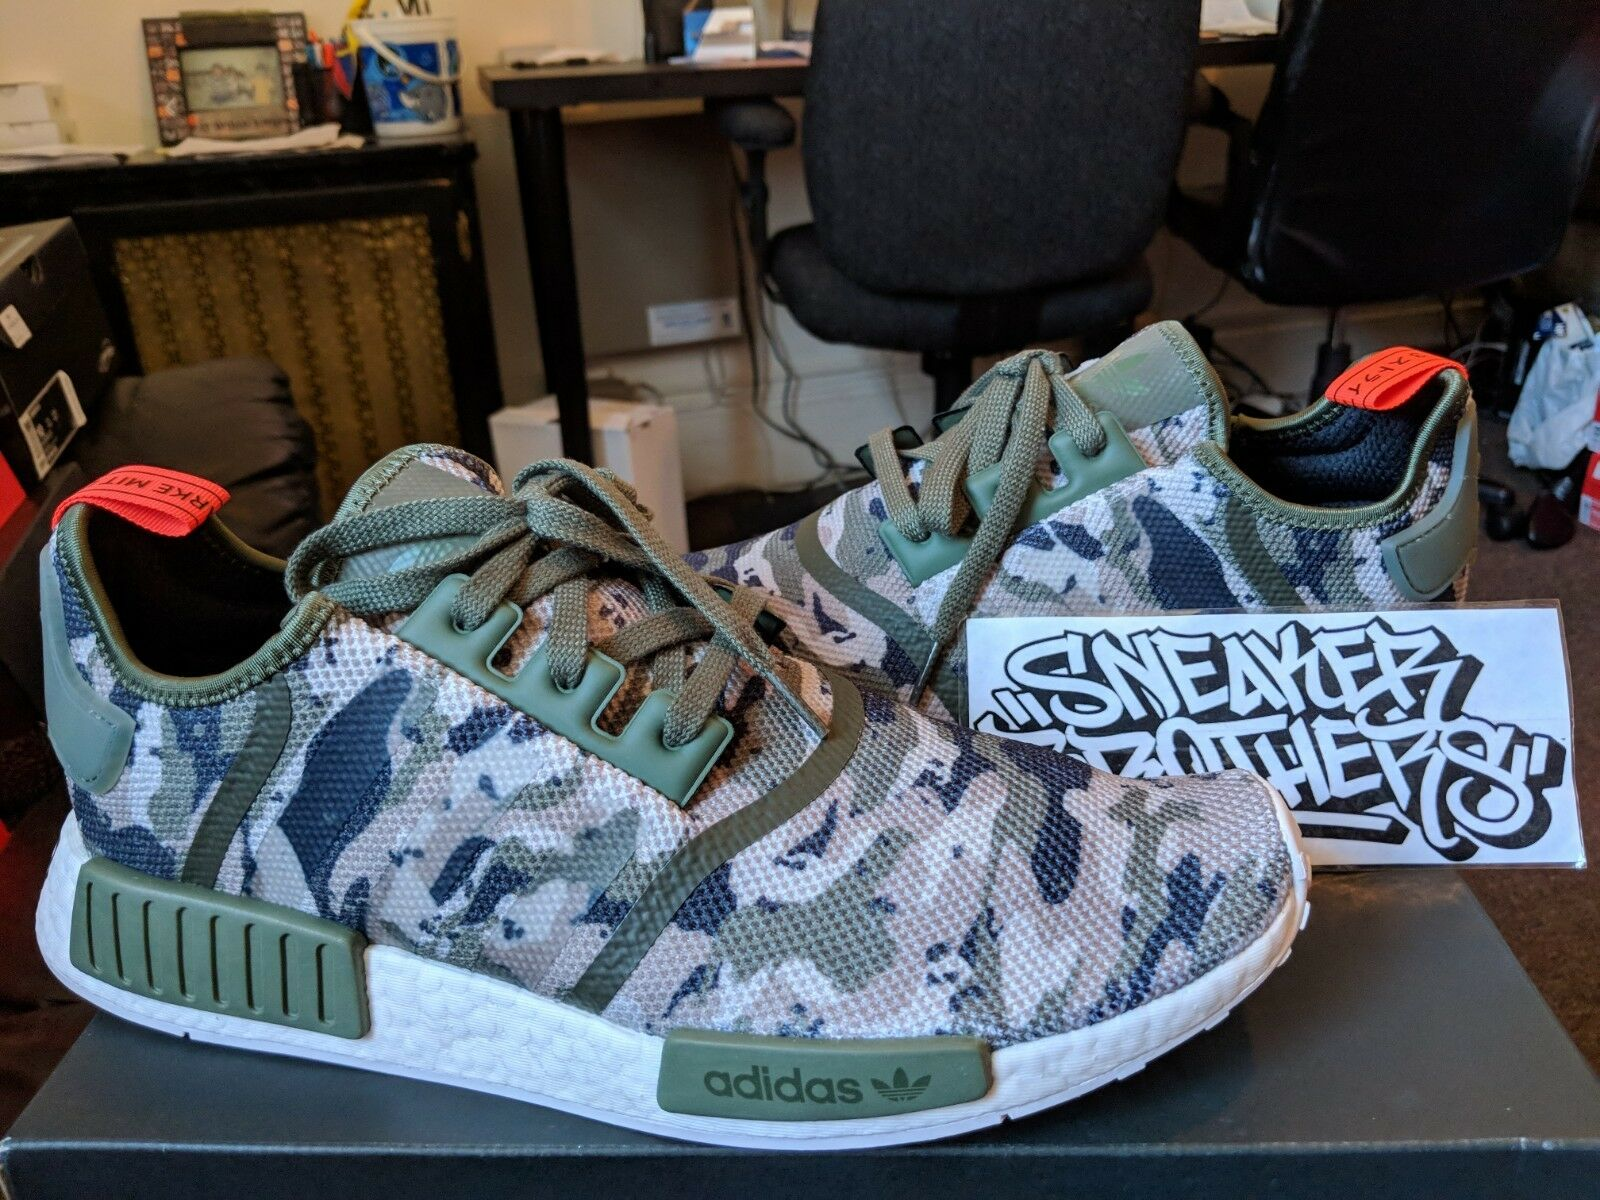 Adidas NMD_R1 Nomad Boost Green Camo orange White Black Running Men's G27914